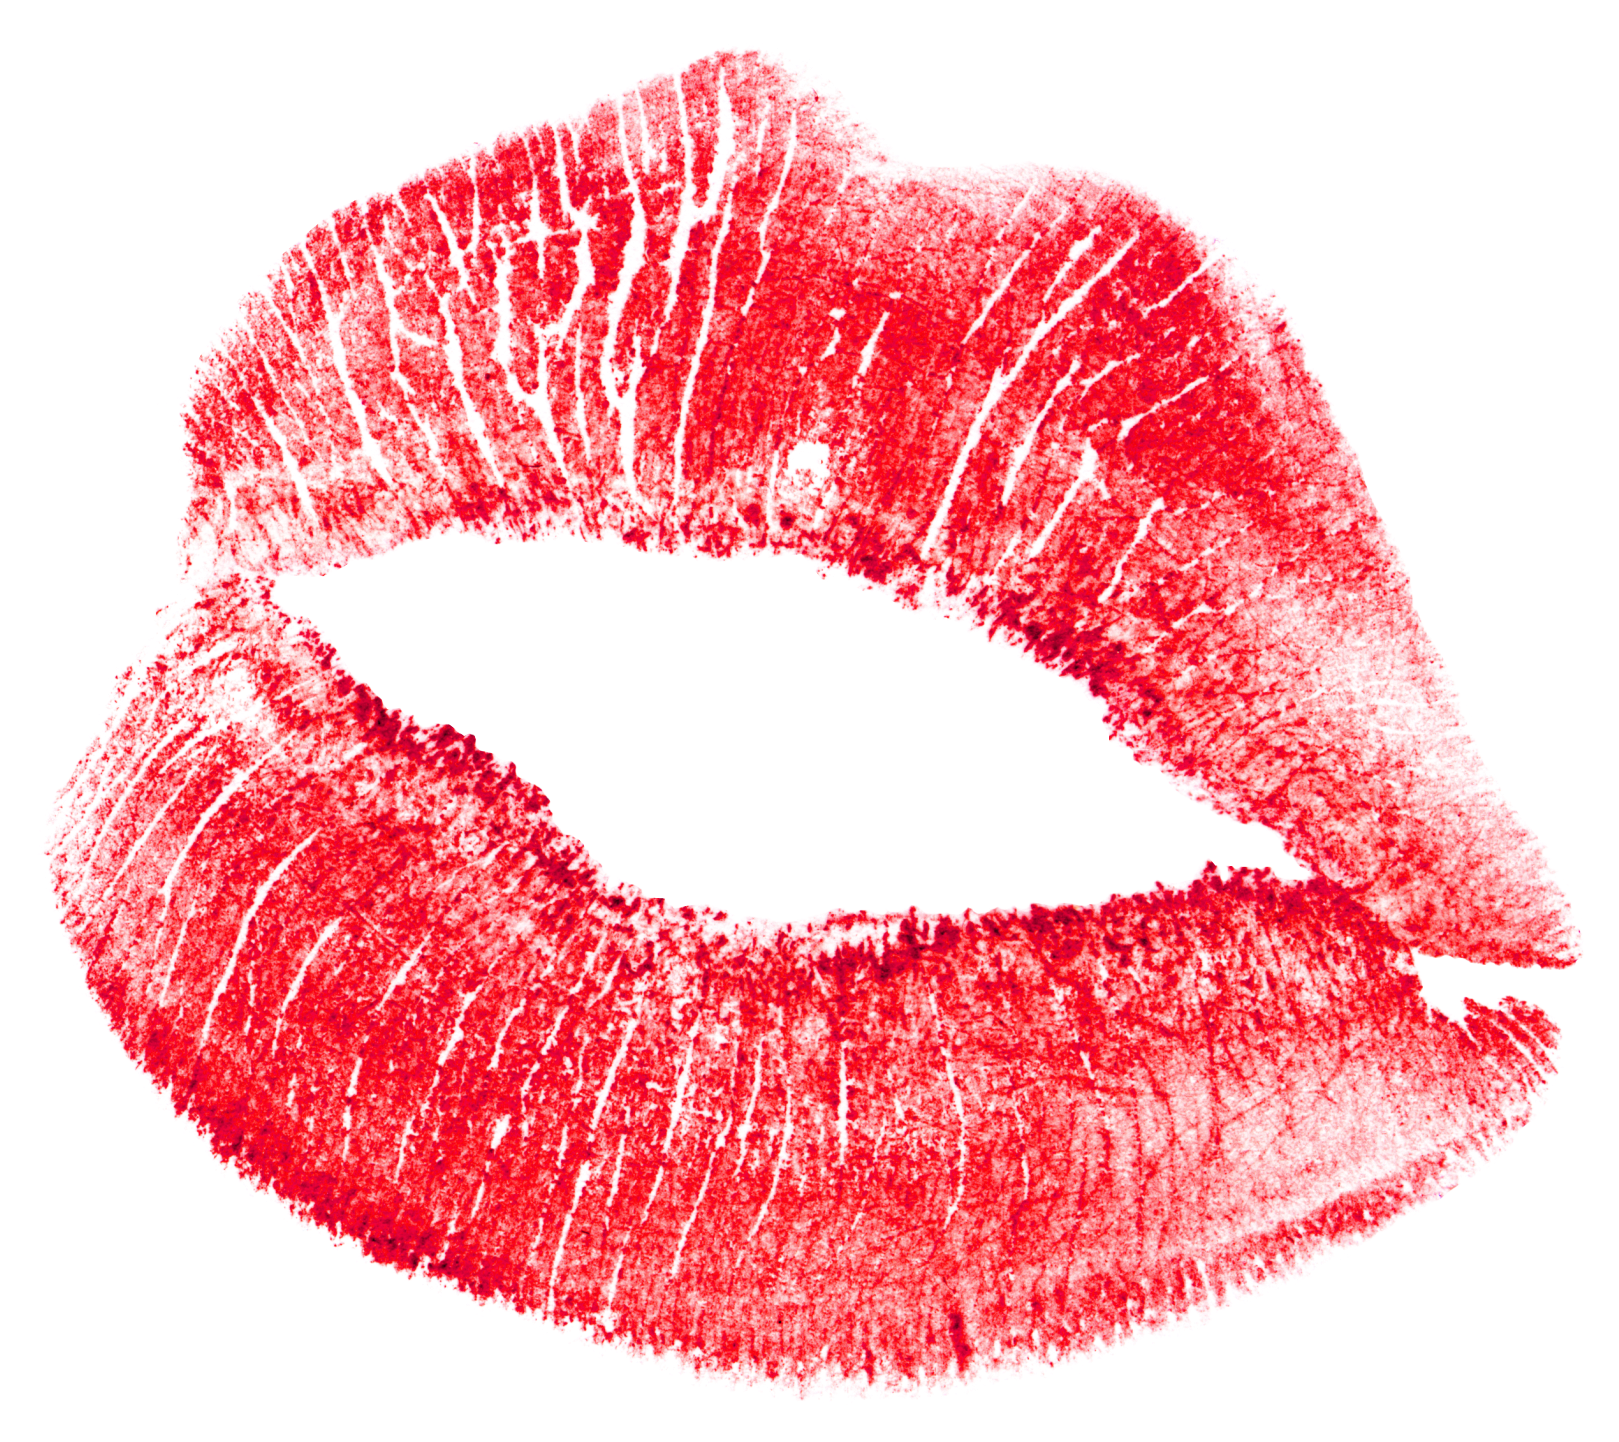 Kiss clipart Clipart collection kiss clipart Free